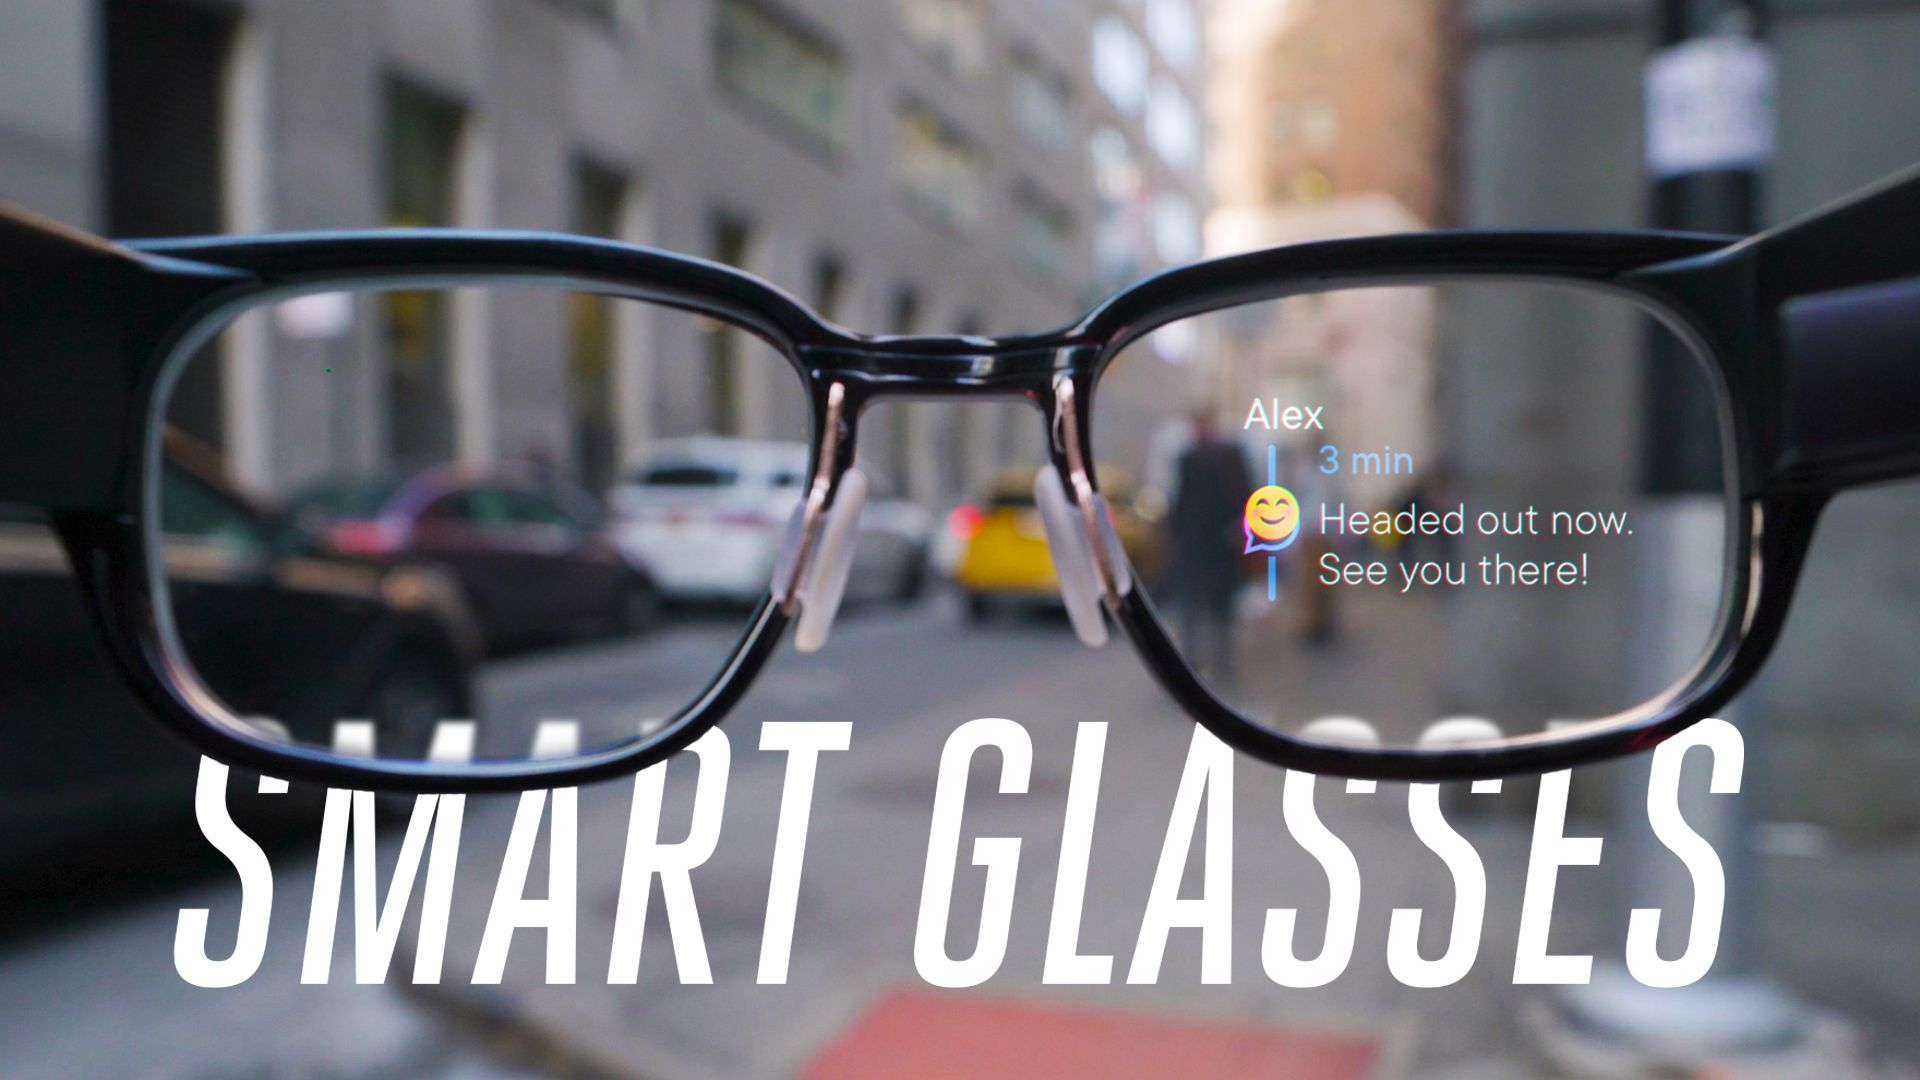 bc93918f8f36 North Focals glasses review  a  600 smartwatch for your face - The Verge